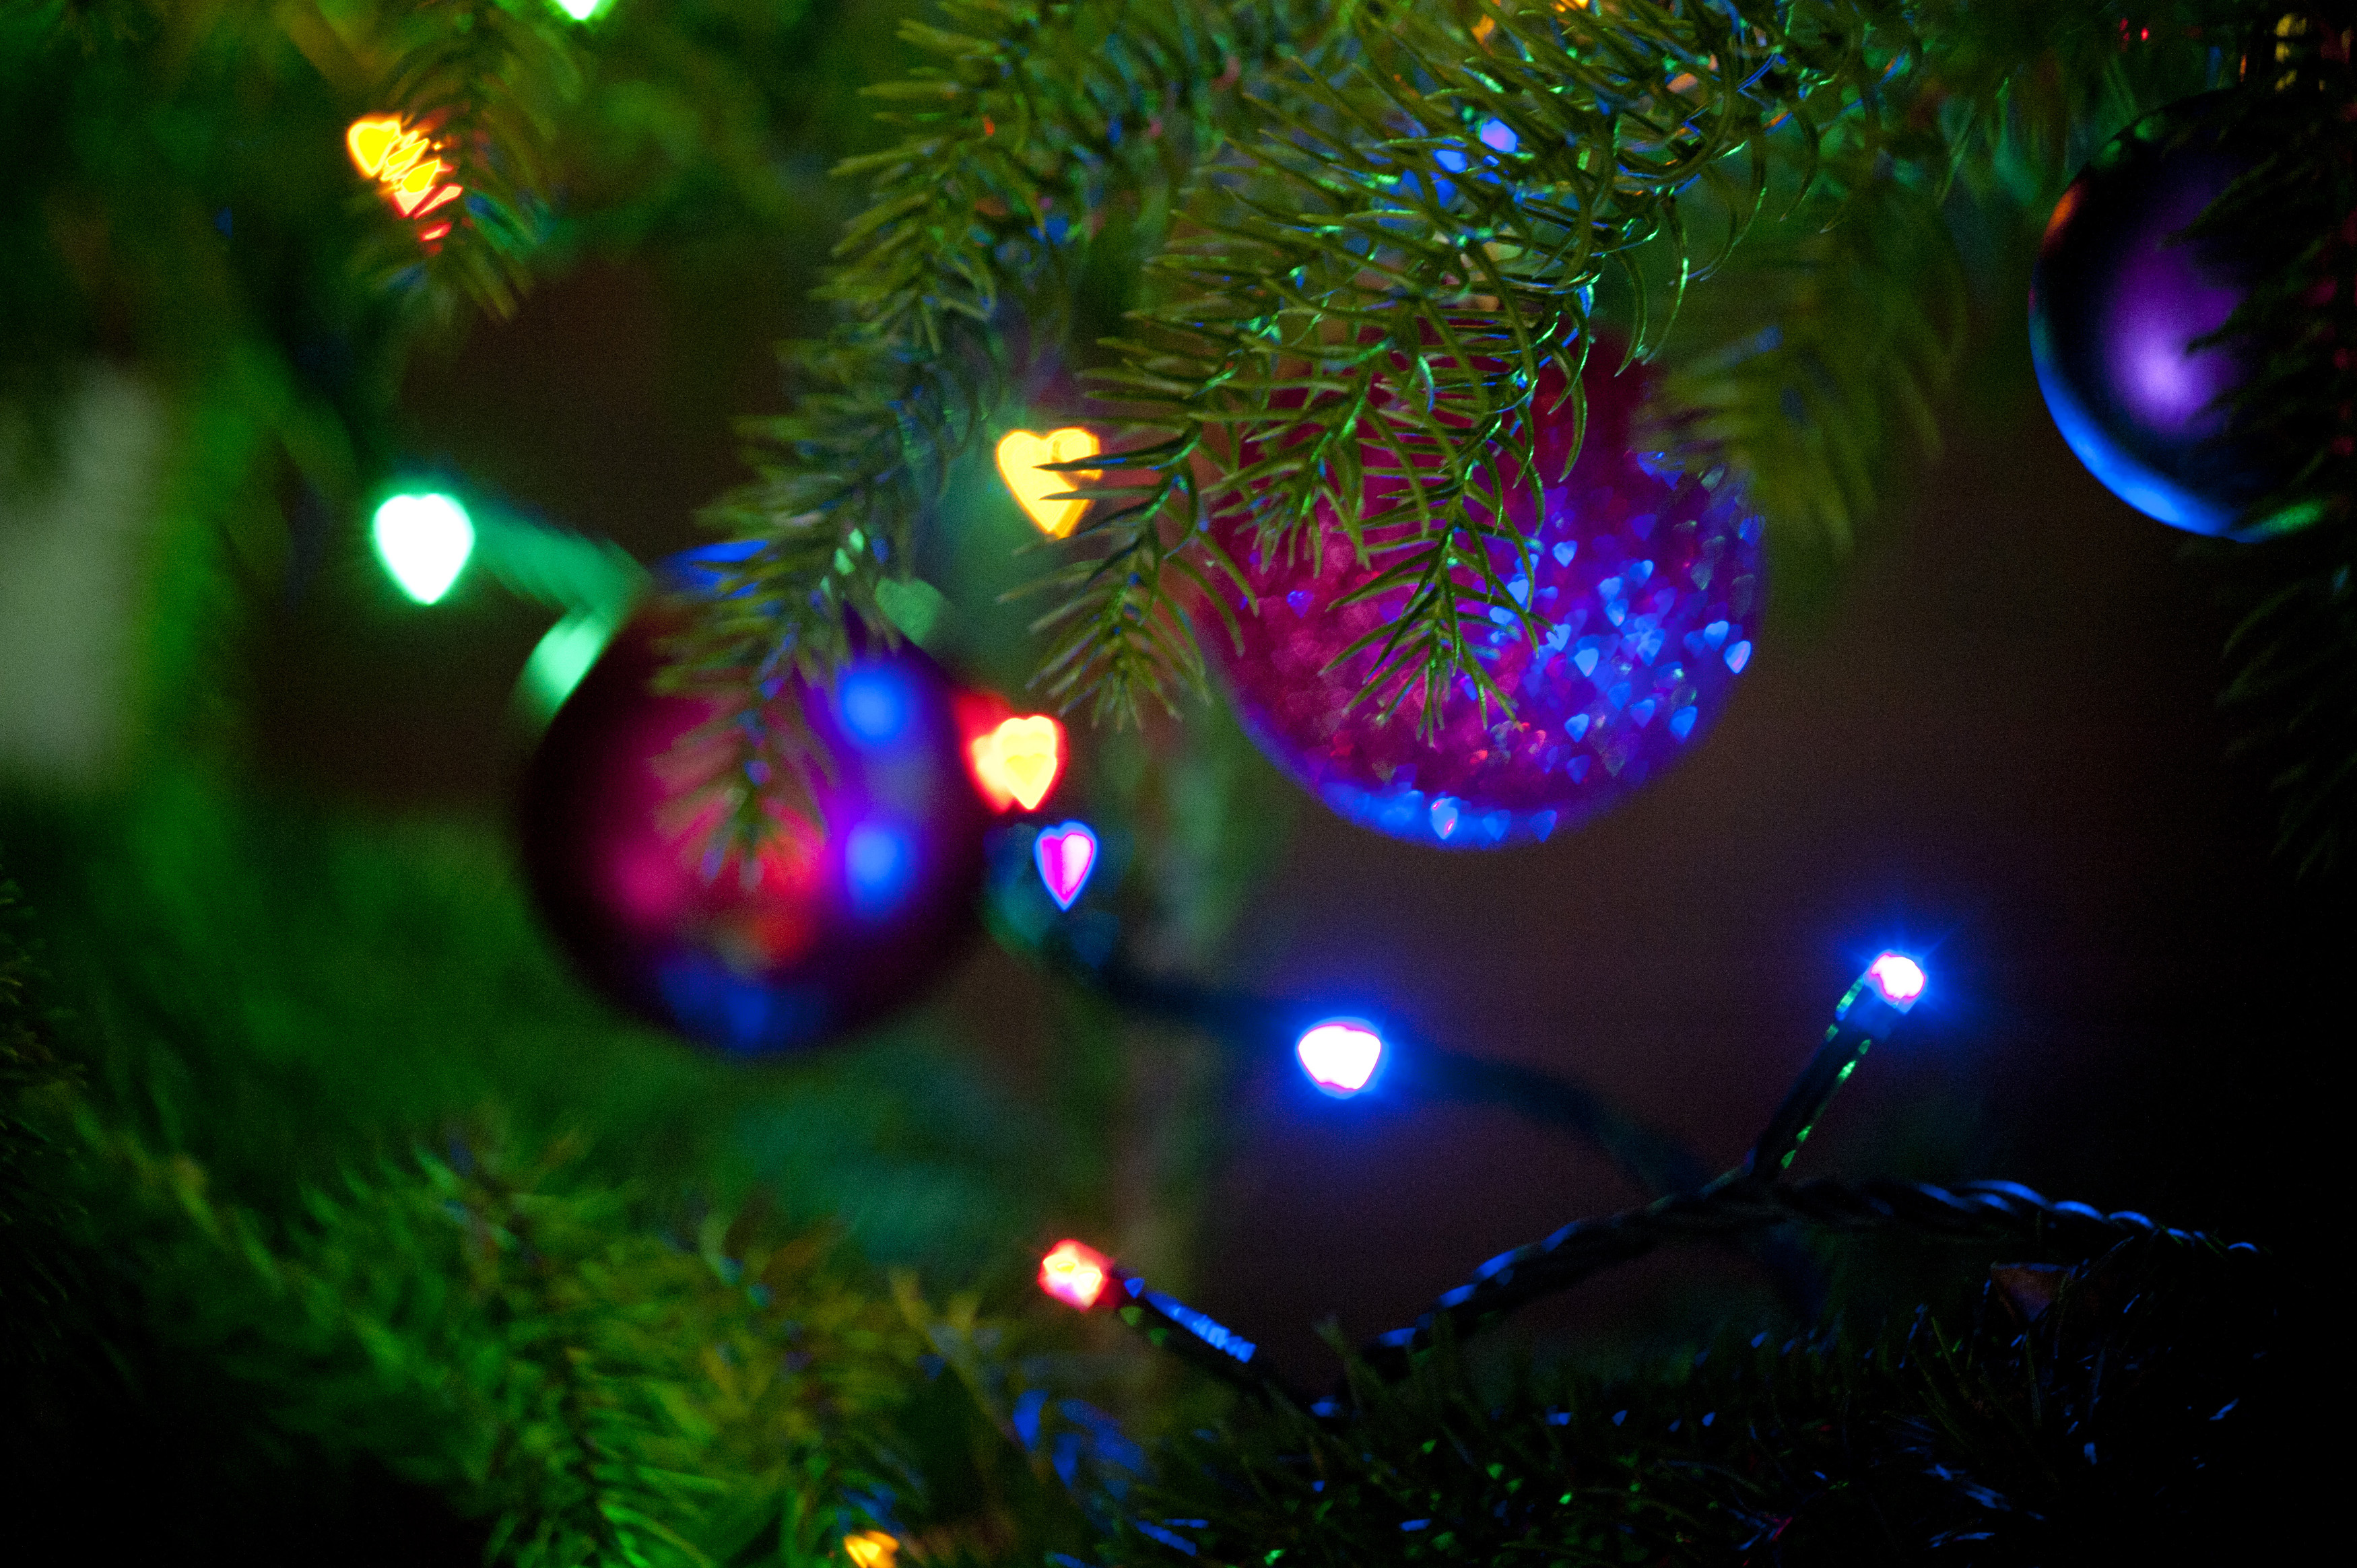 Free Image Of Close Up Christmas Tree Branches